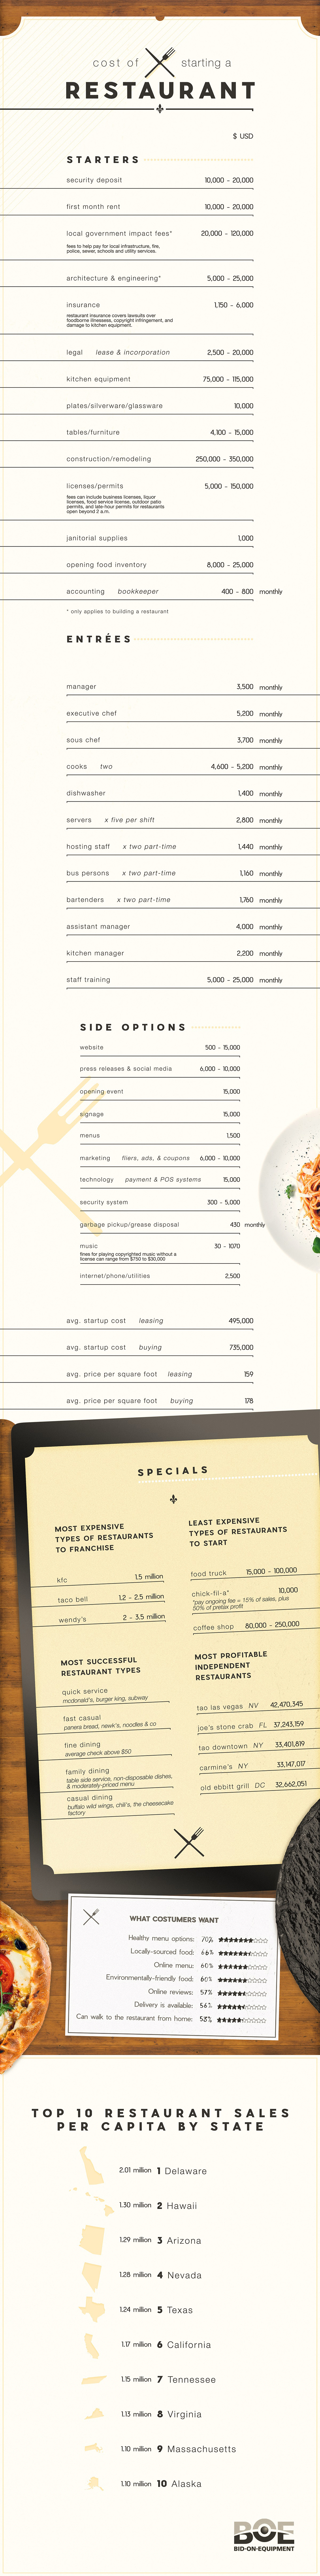 Cost Of Starting A Restaurant [Infographic]